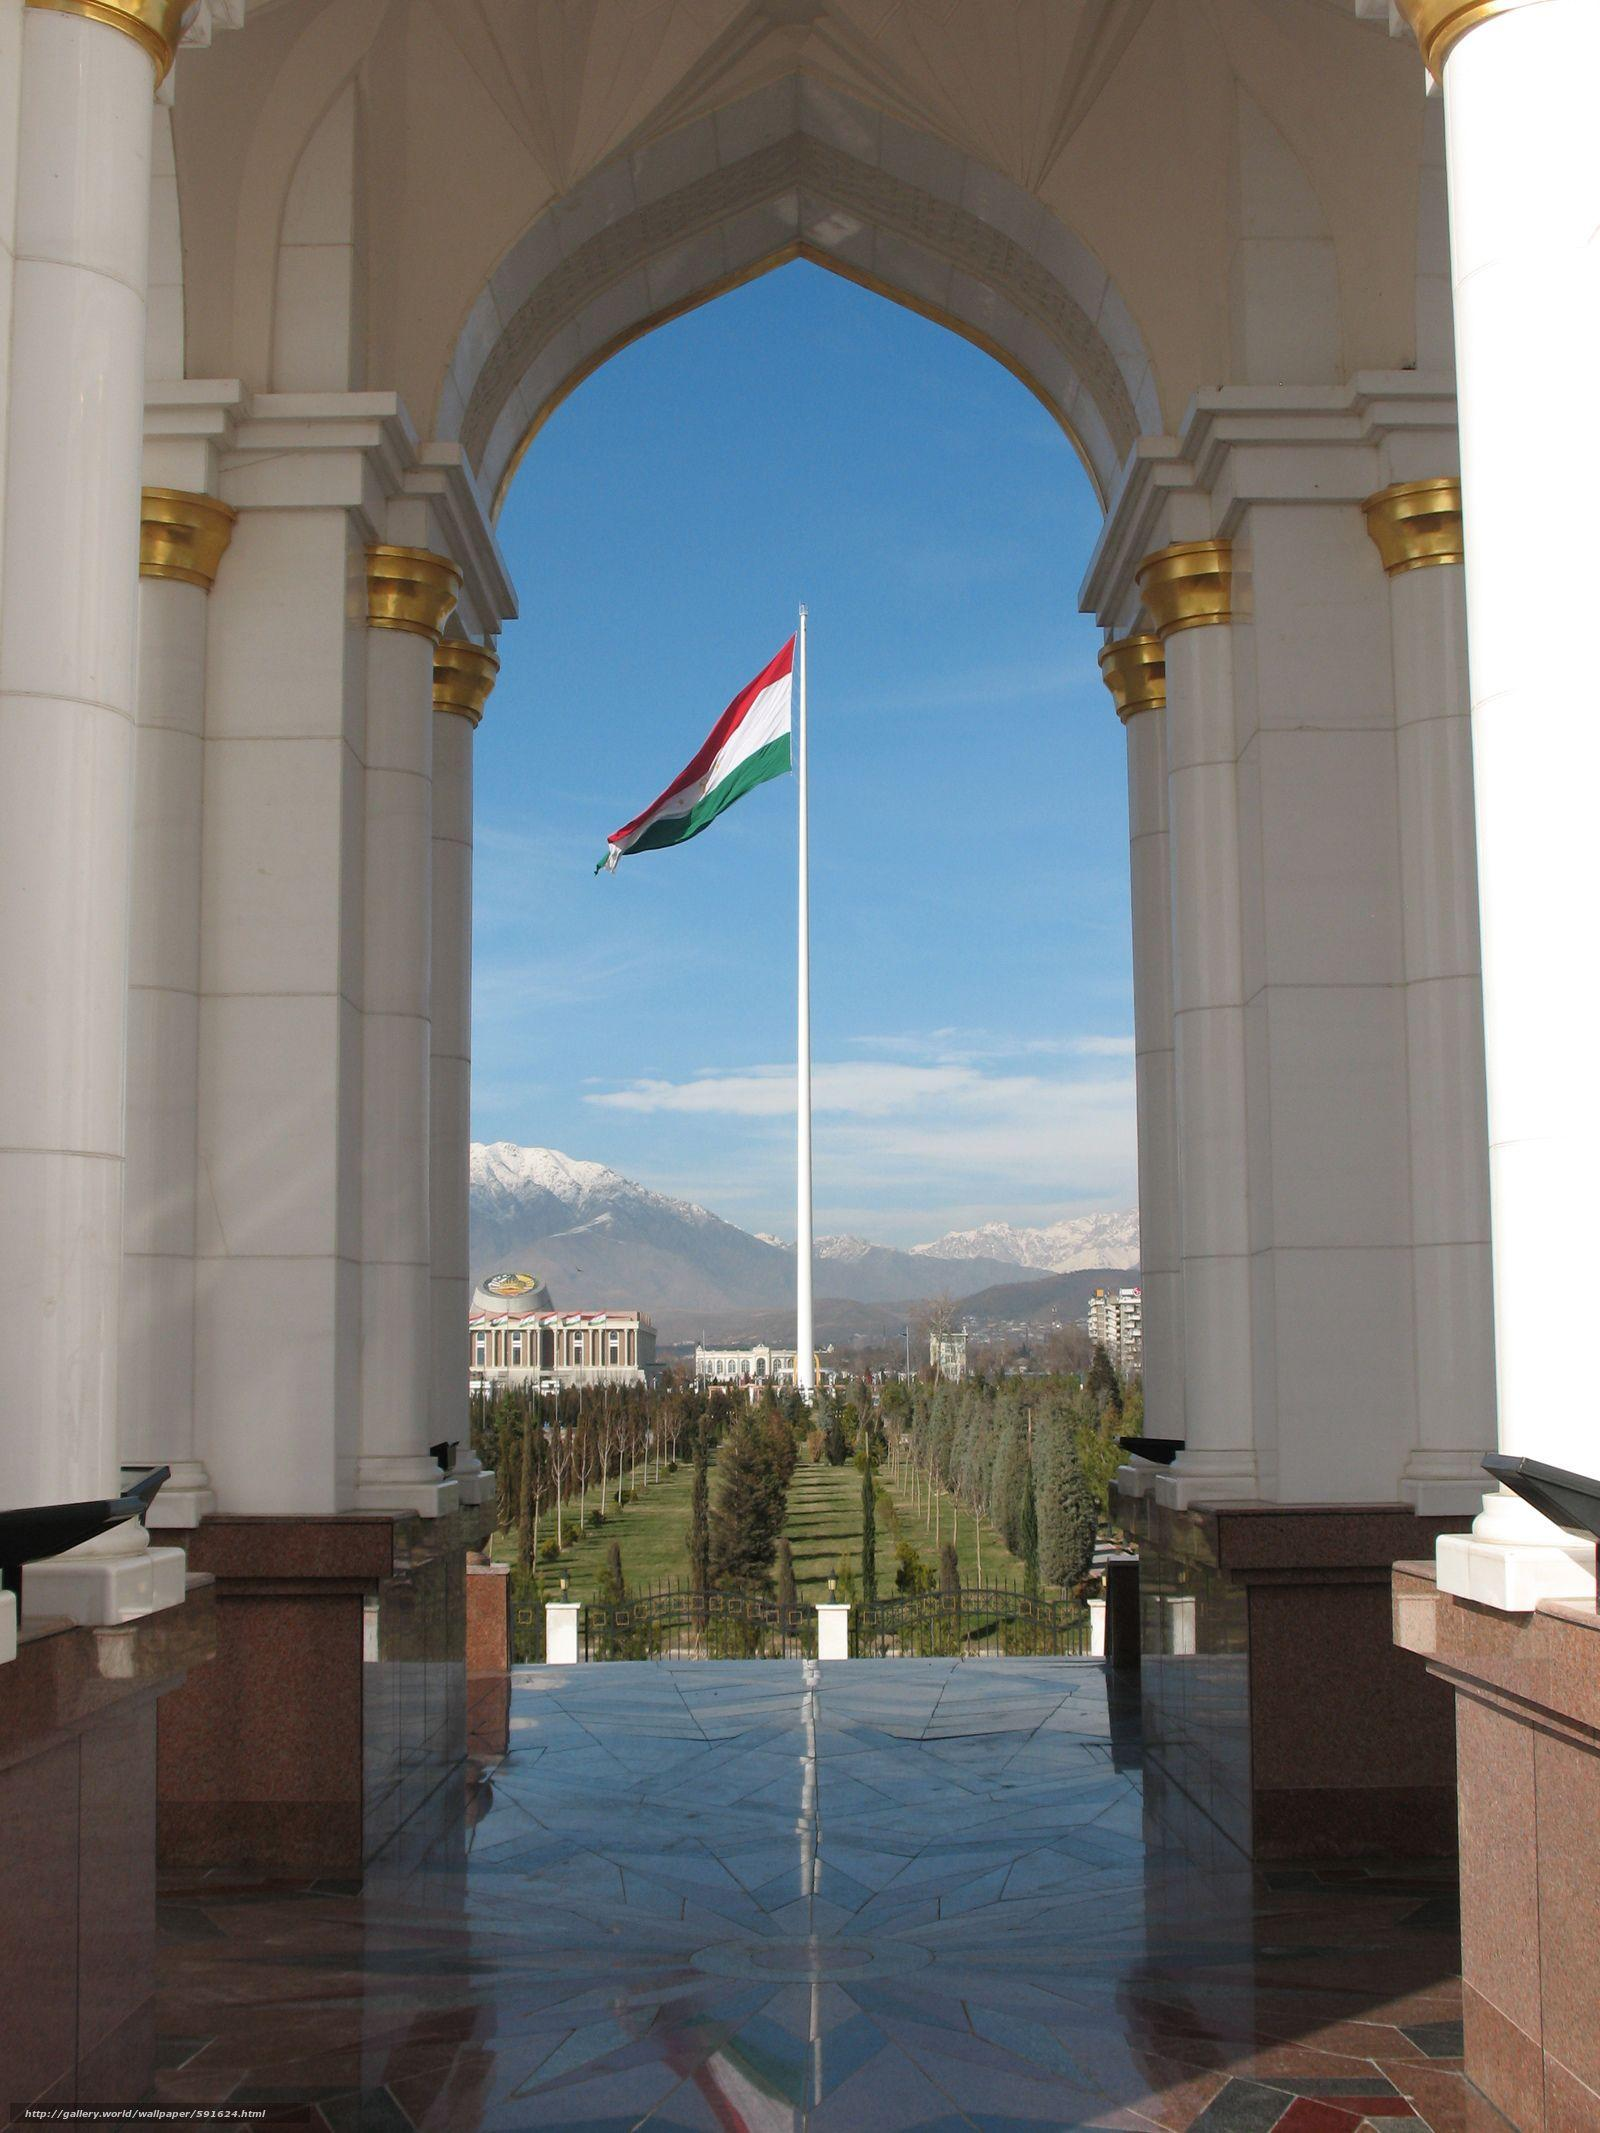 Download wallpapers Tajikistan, Dushanbe, government, flag free